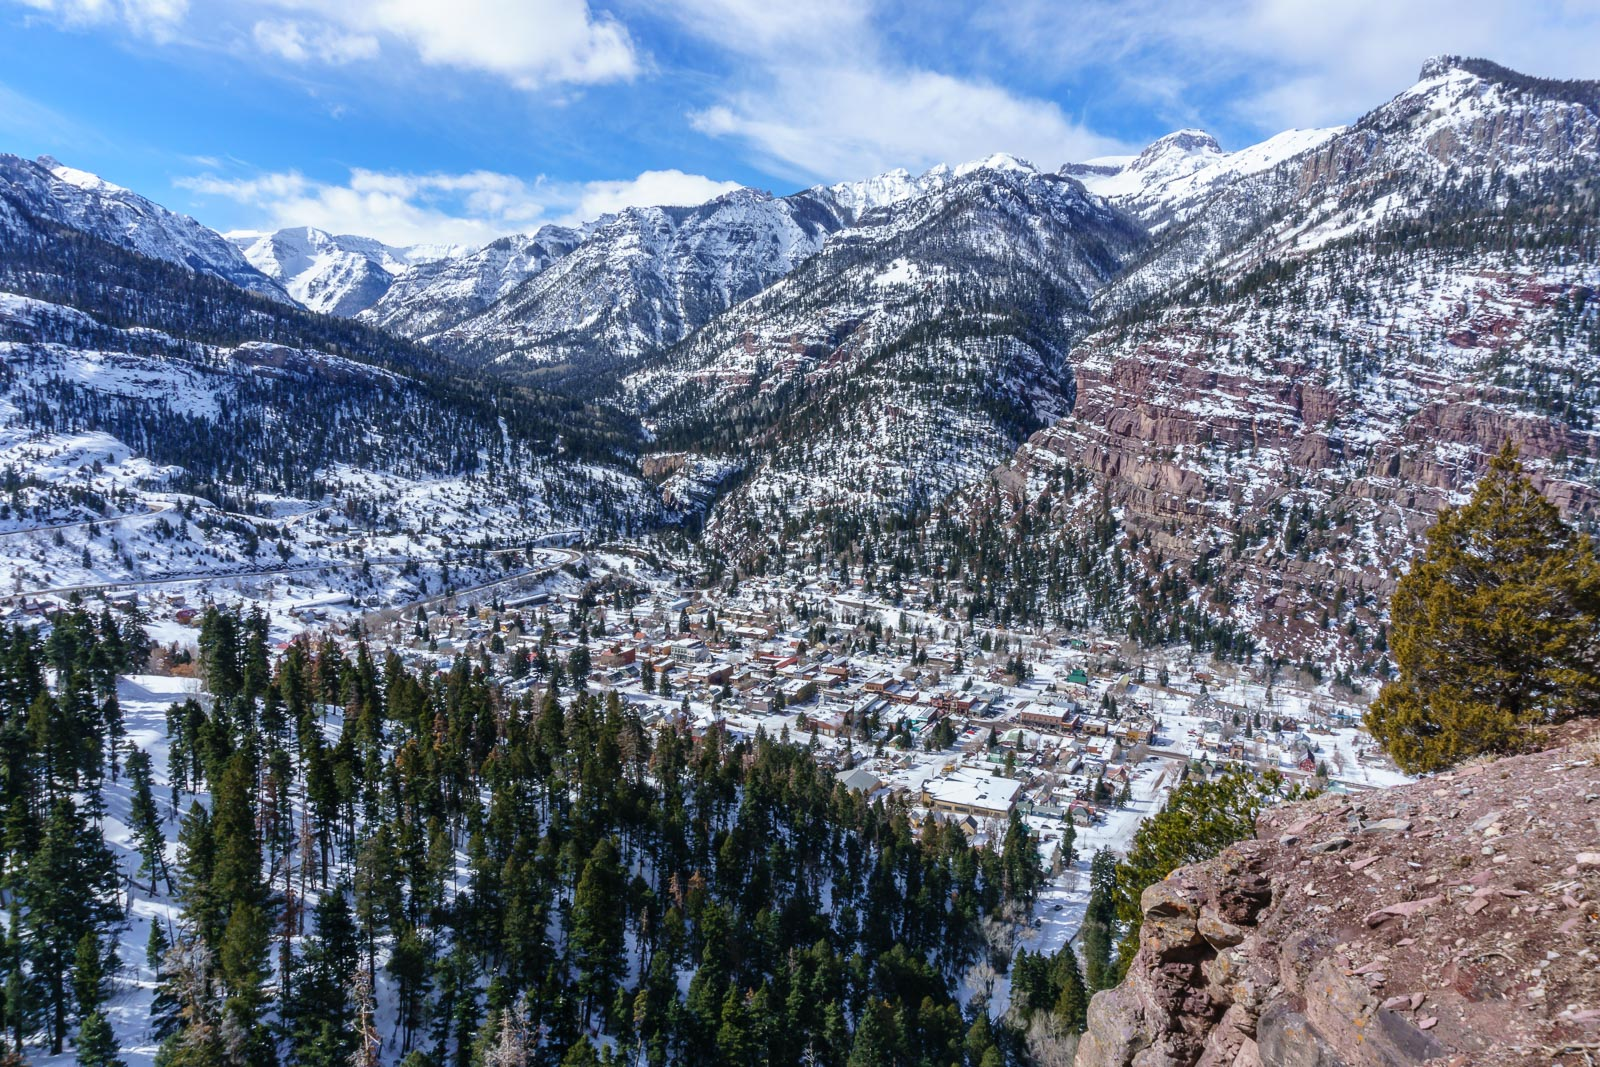 View of Ouray from above the town.